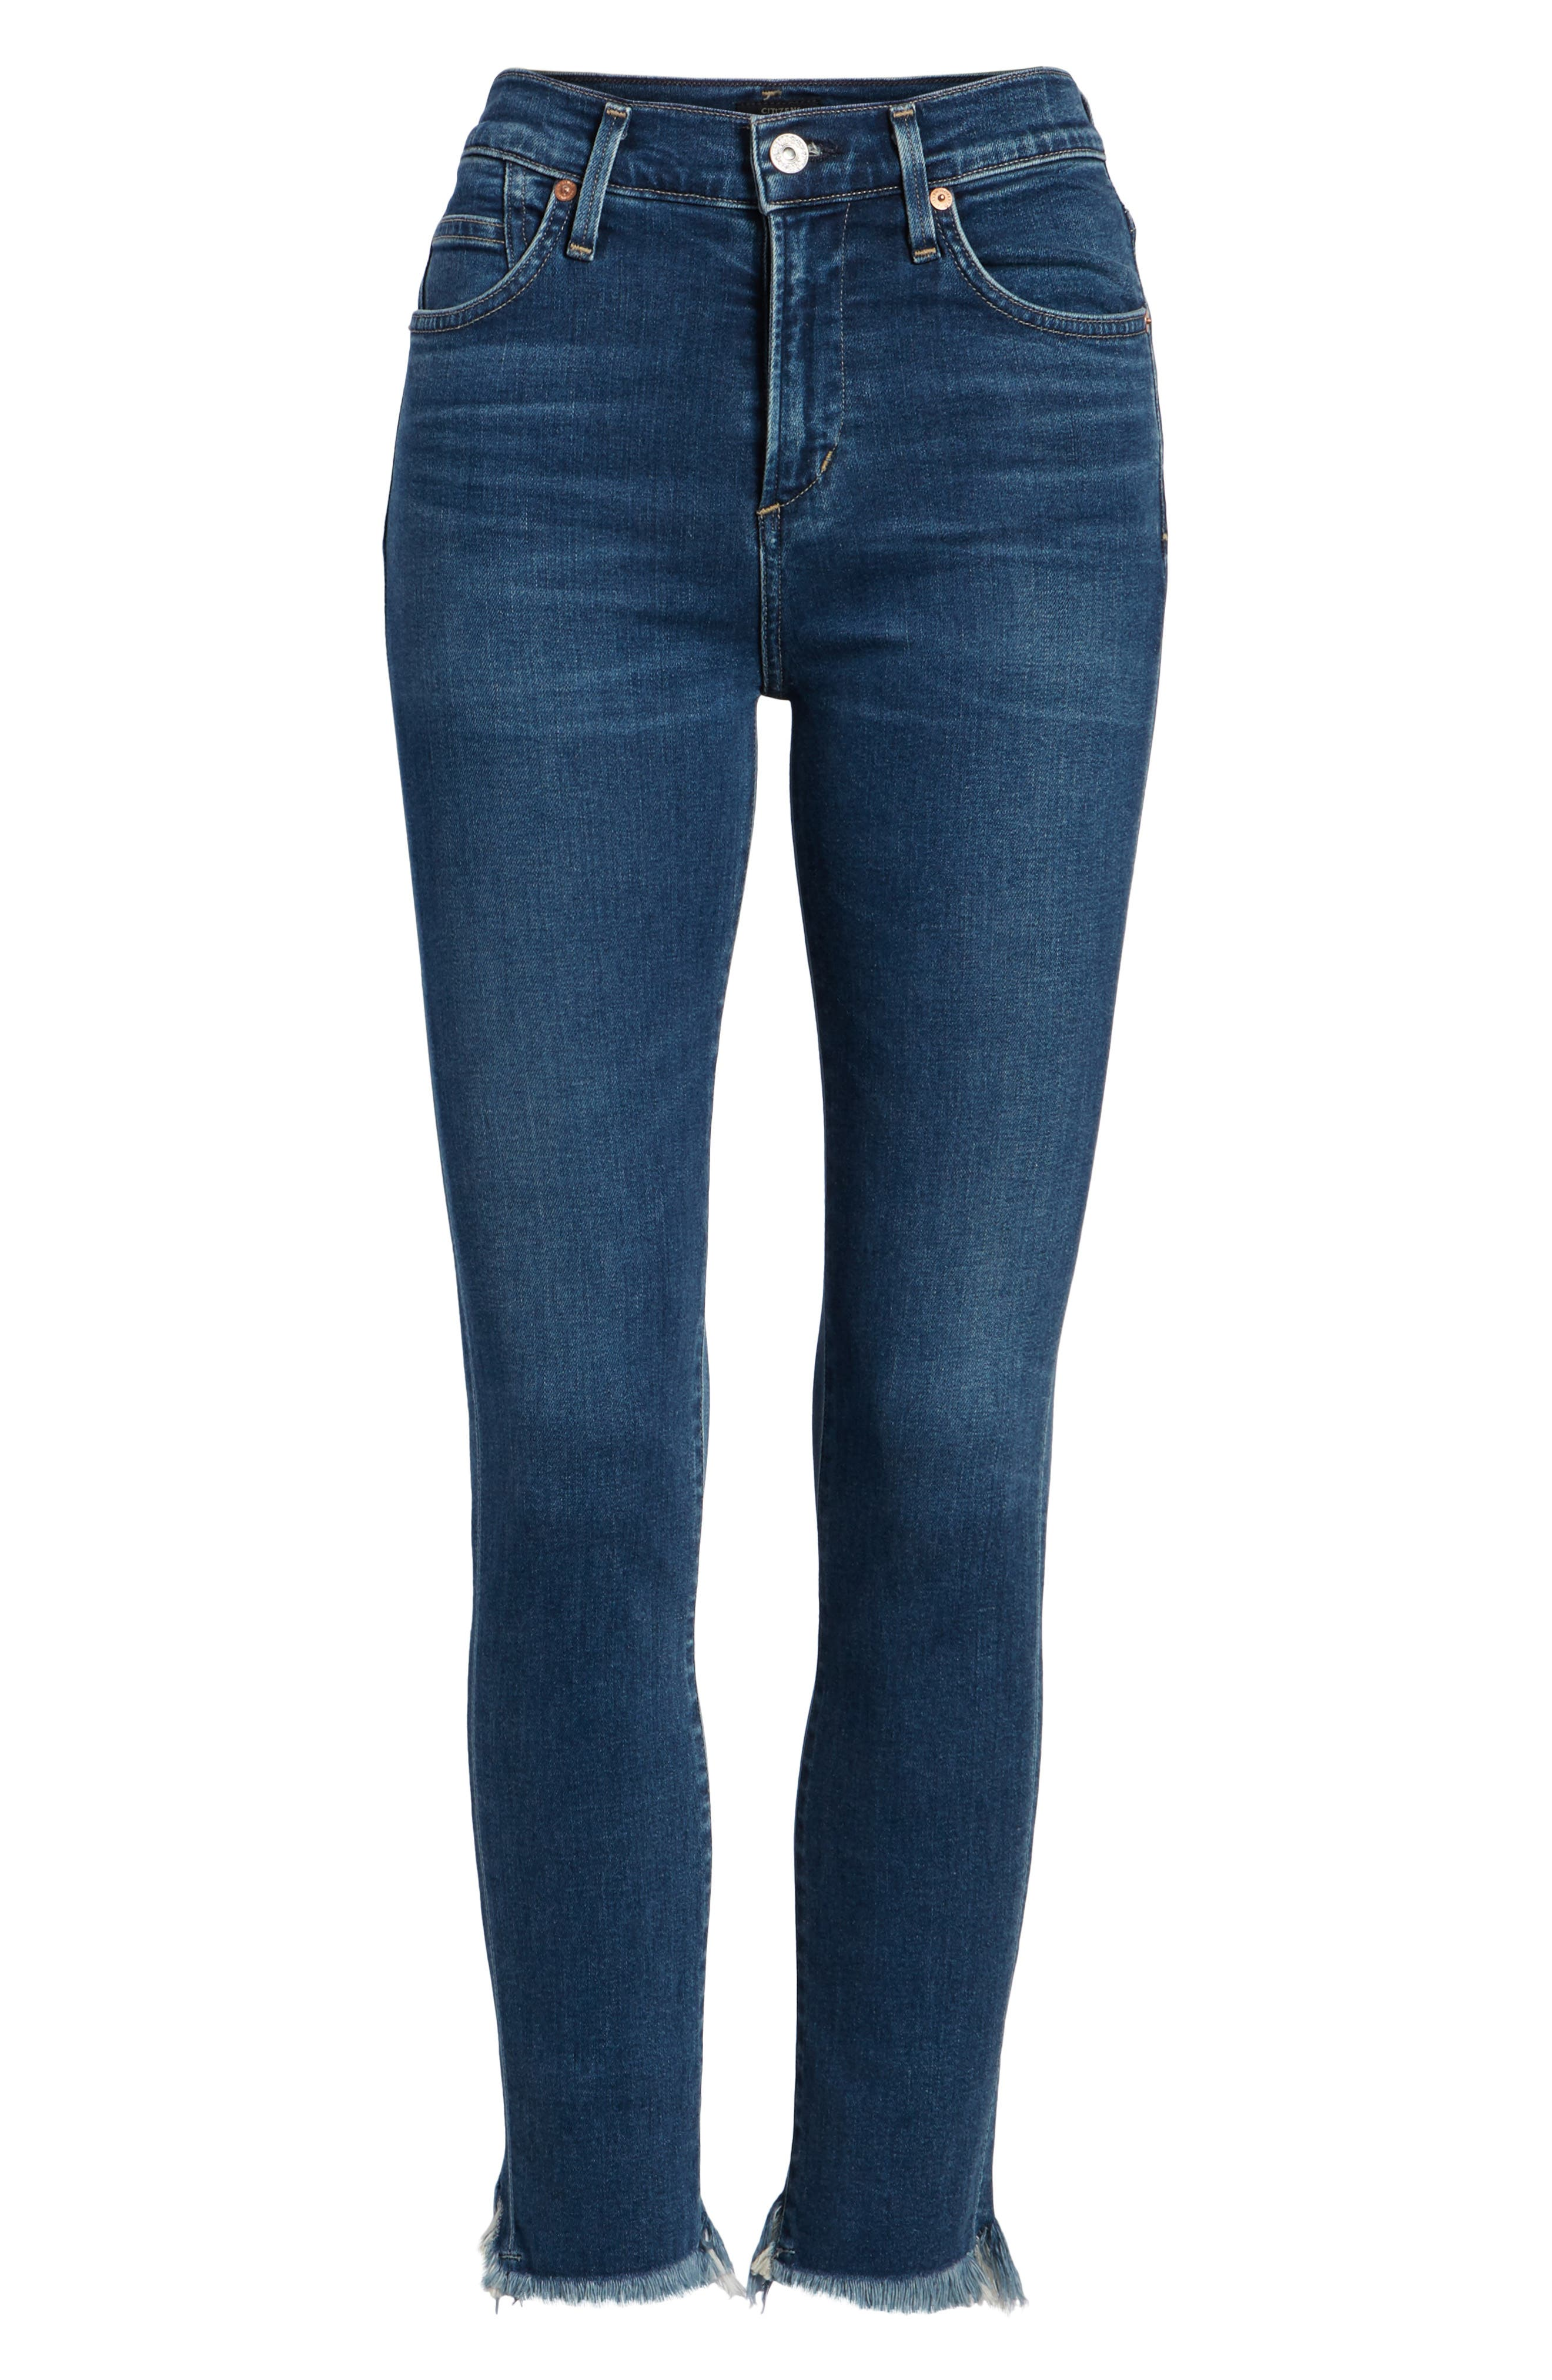 Rocket High Waist Crop Skinny Jeans,                             Alternate thumbnail 7, color,                             FREQUENCY